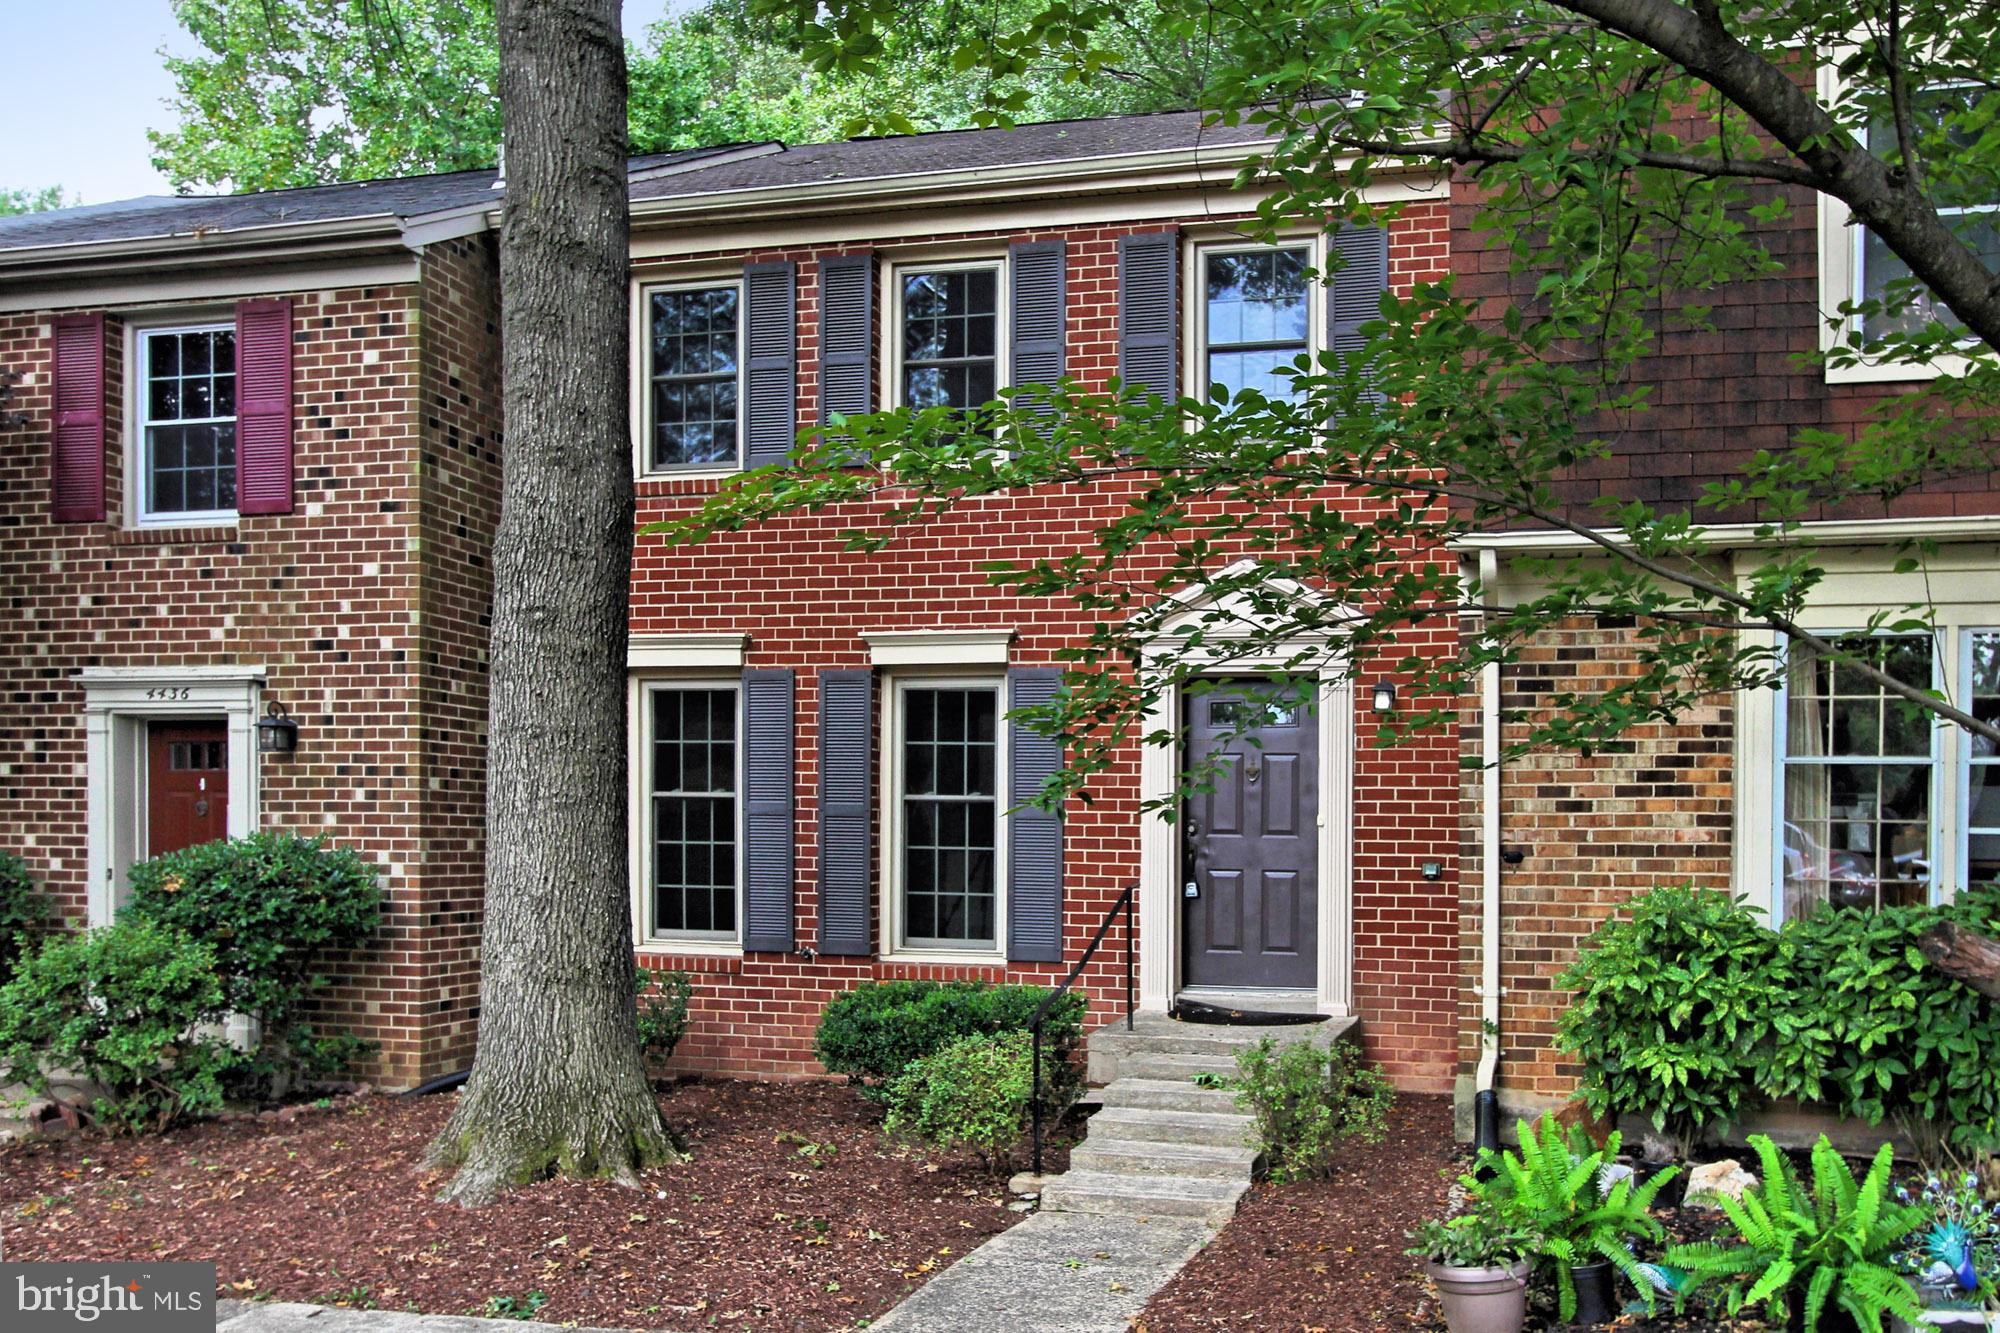 Meticulously maintained and beautifully renovated  all brick three level townhome in the heart of Annandale.   New privacy fence surrounds a charming brick patio and mulched planting area.  New HVAC and hot water heater! Freshly painted throughout with neutral paint and white trim. Brand new, gleaming hardwoods on the main level.  Eat-in kitchen with new granite counters tops, sink, and faucet.  White cabinets and spacious pantry.  Newer SS appliances.  Double pane replacement windows throughout . New, programmable Bryant thermostat with Wi-Fi connectivity! Upper and lower levels have brand new, plush, neutral, wall-to-wall carpet. Newer light fixtures throughout.  Generous master bedroom with updated en-suite bath and dressing room. Fabulous lower level rec room, perfect for informal entertaining.  New wood burning stove and a bar area.  Ample storage space.  Great utility room with rough in plumbing. Newer washer and dryer convey.  Minutes to I-495, shops, and dining.